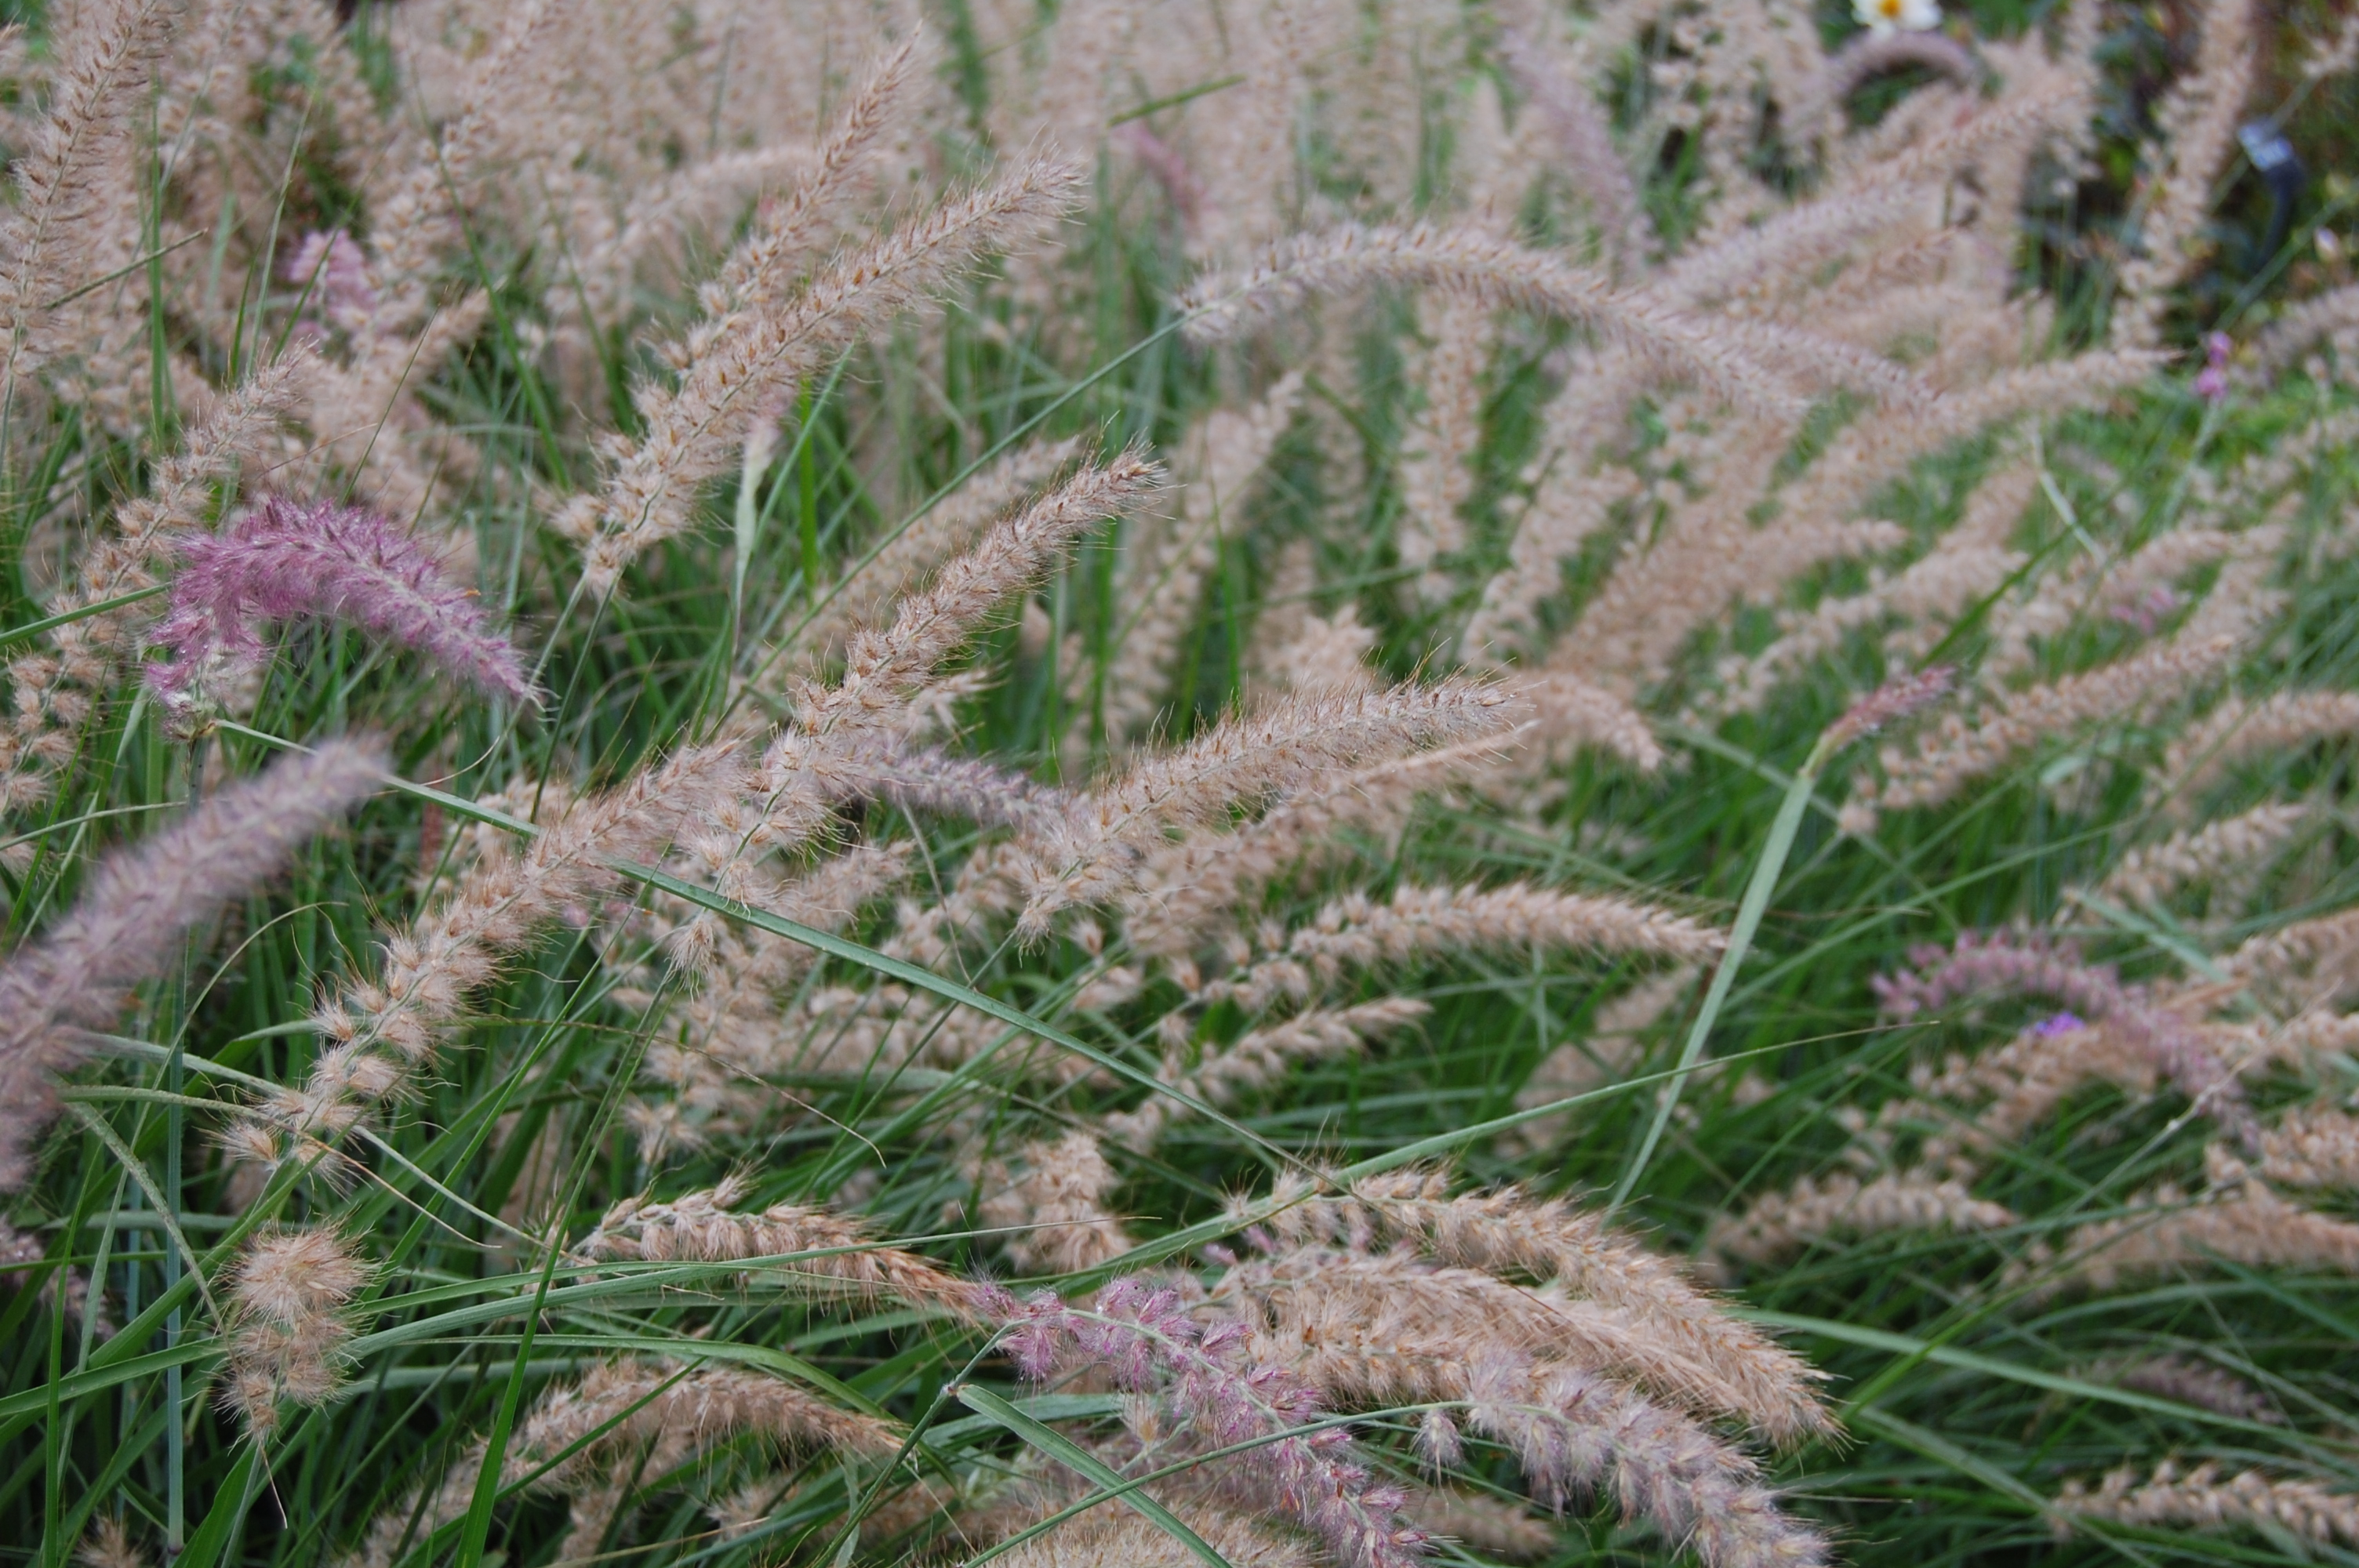 Rhs wisley part 1 gardeninacity for Small ornamental grasses for borders